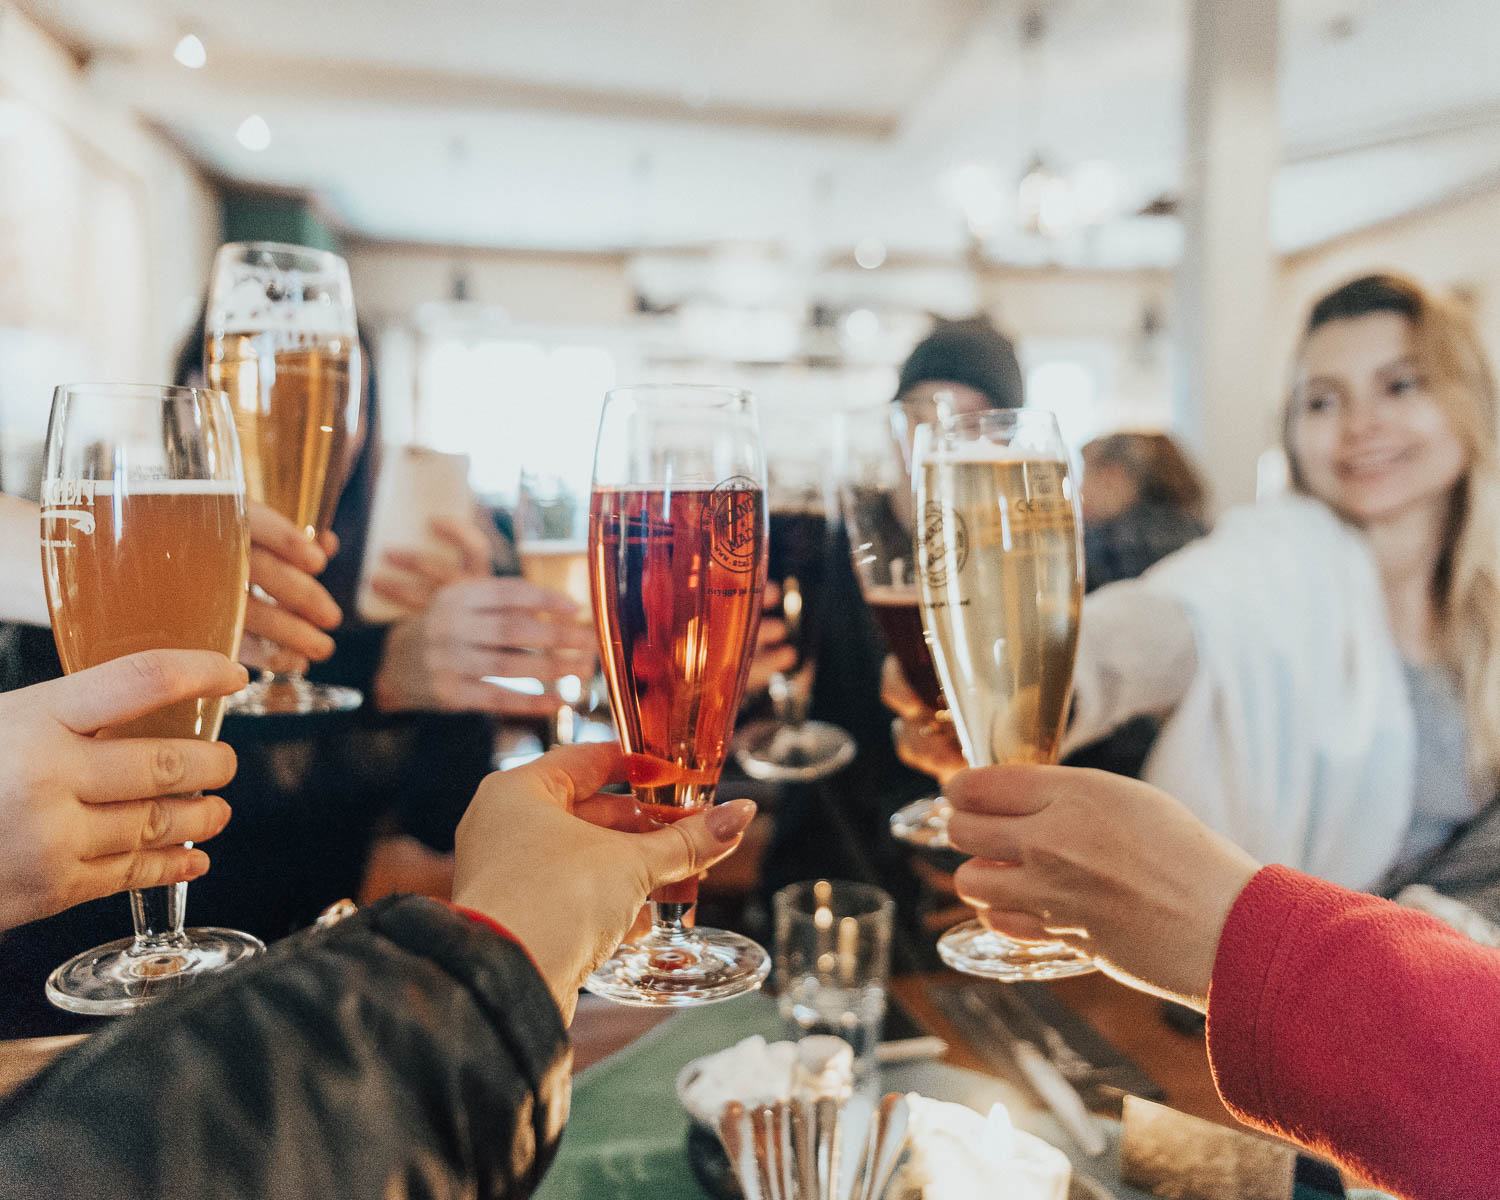 Enjoy craft beer at Stalldalen |Things to do in Åland